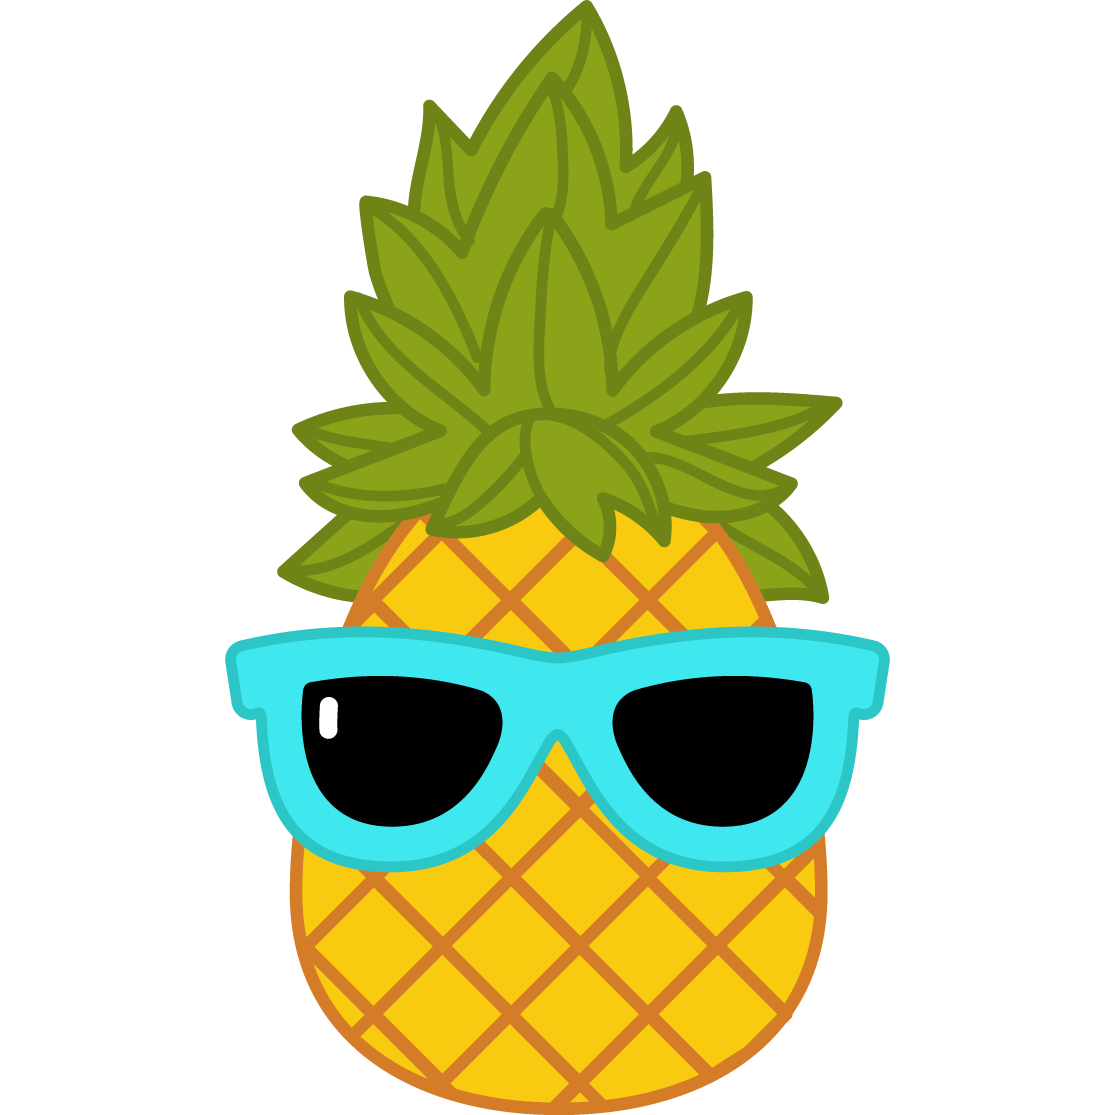 Pineapple clipart crown image black and white library Products – Pineapple Craze image black and white library